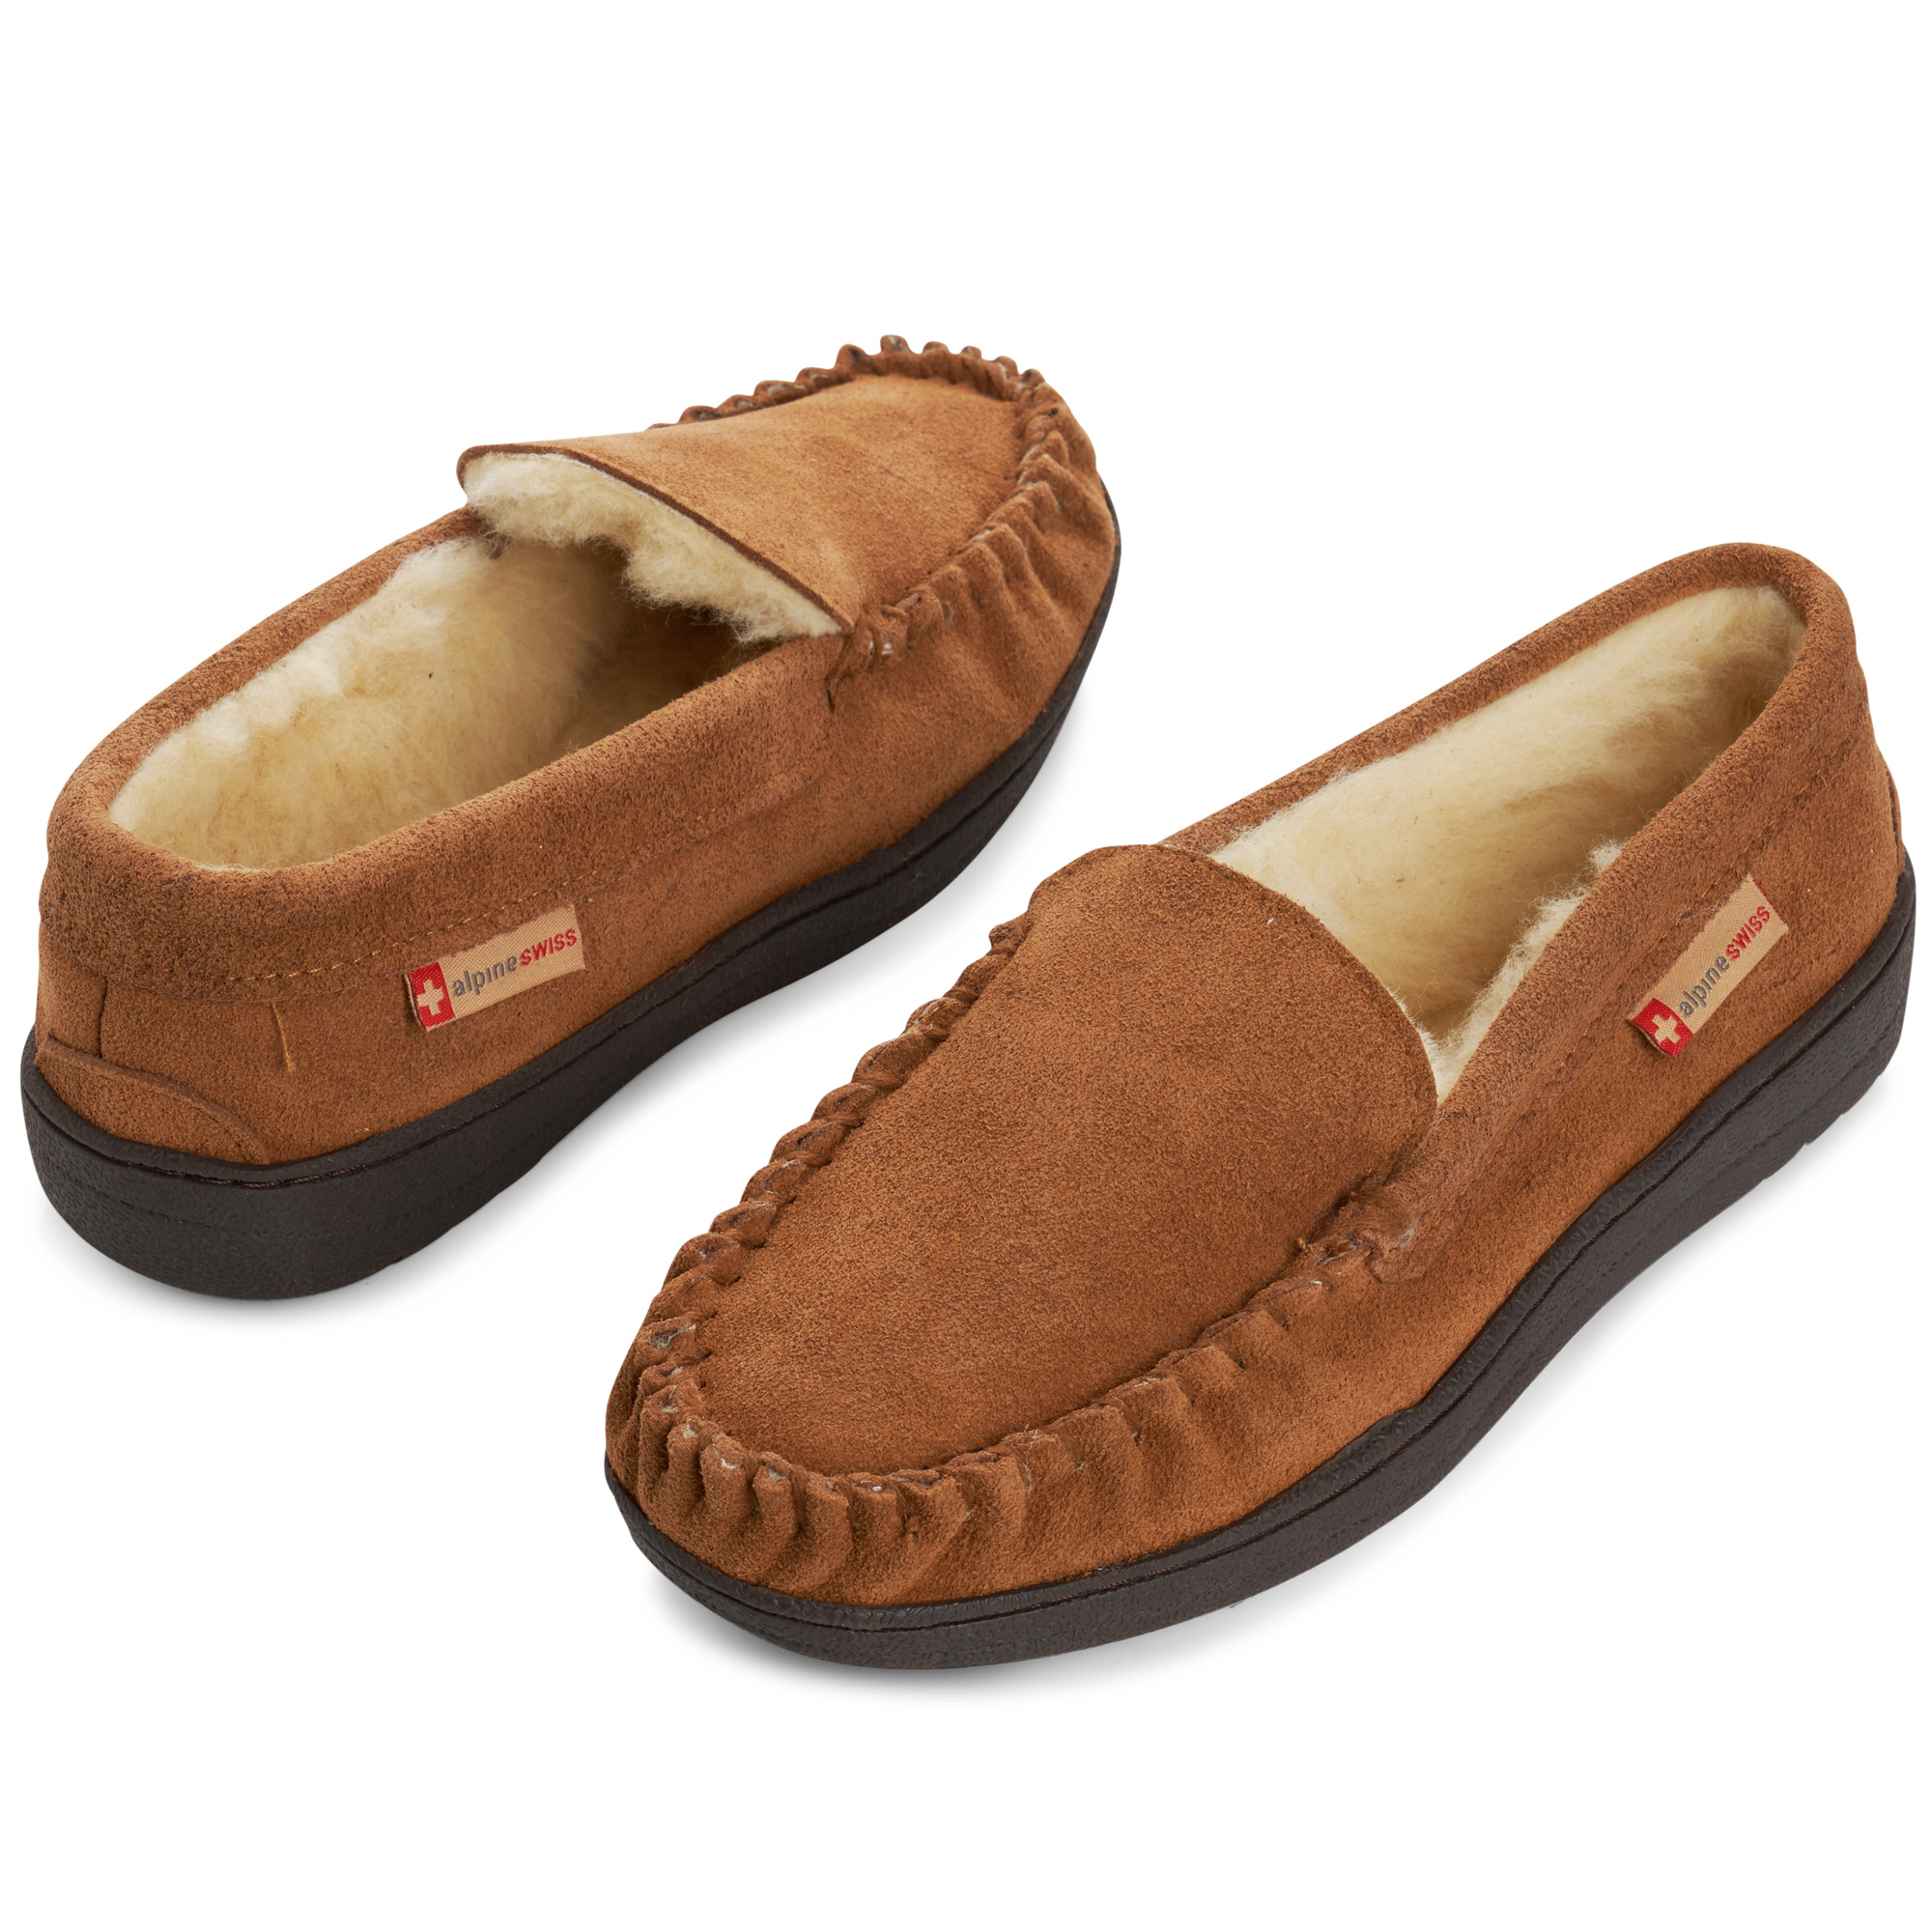 Alpine-Swiss-Yukon-Mens-Suede-Shearling-Moccasin-Slippers-Moc-Toe-Slip-On-Shoes thumbnail 21